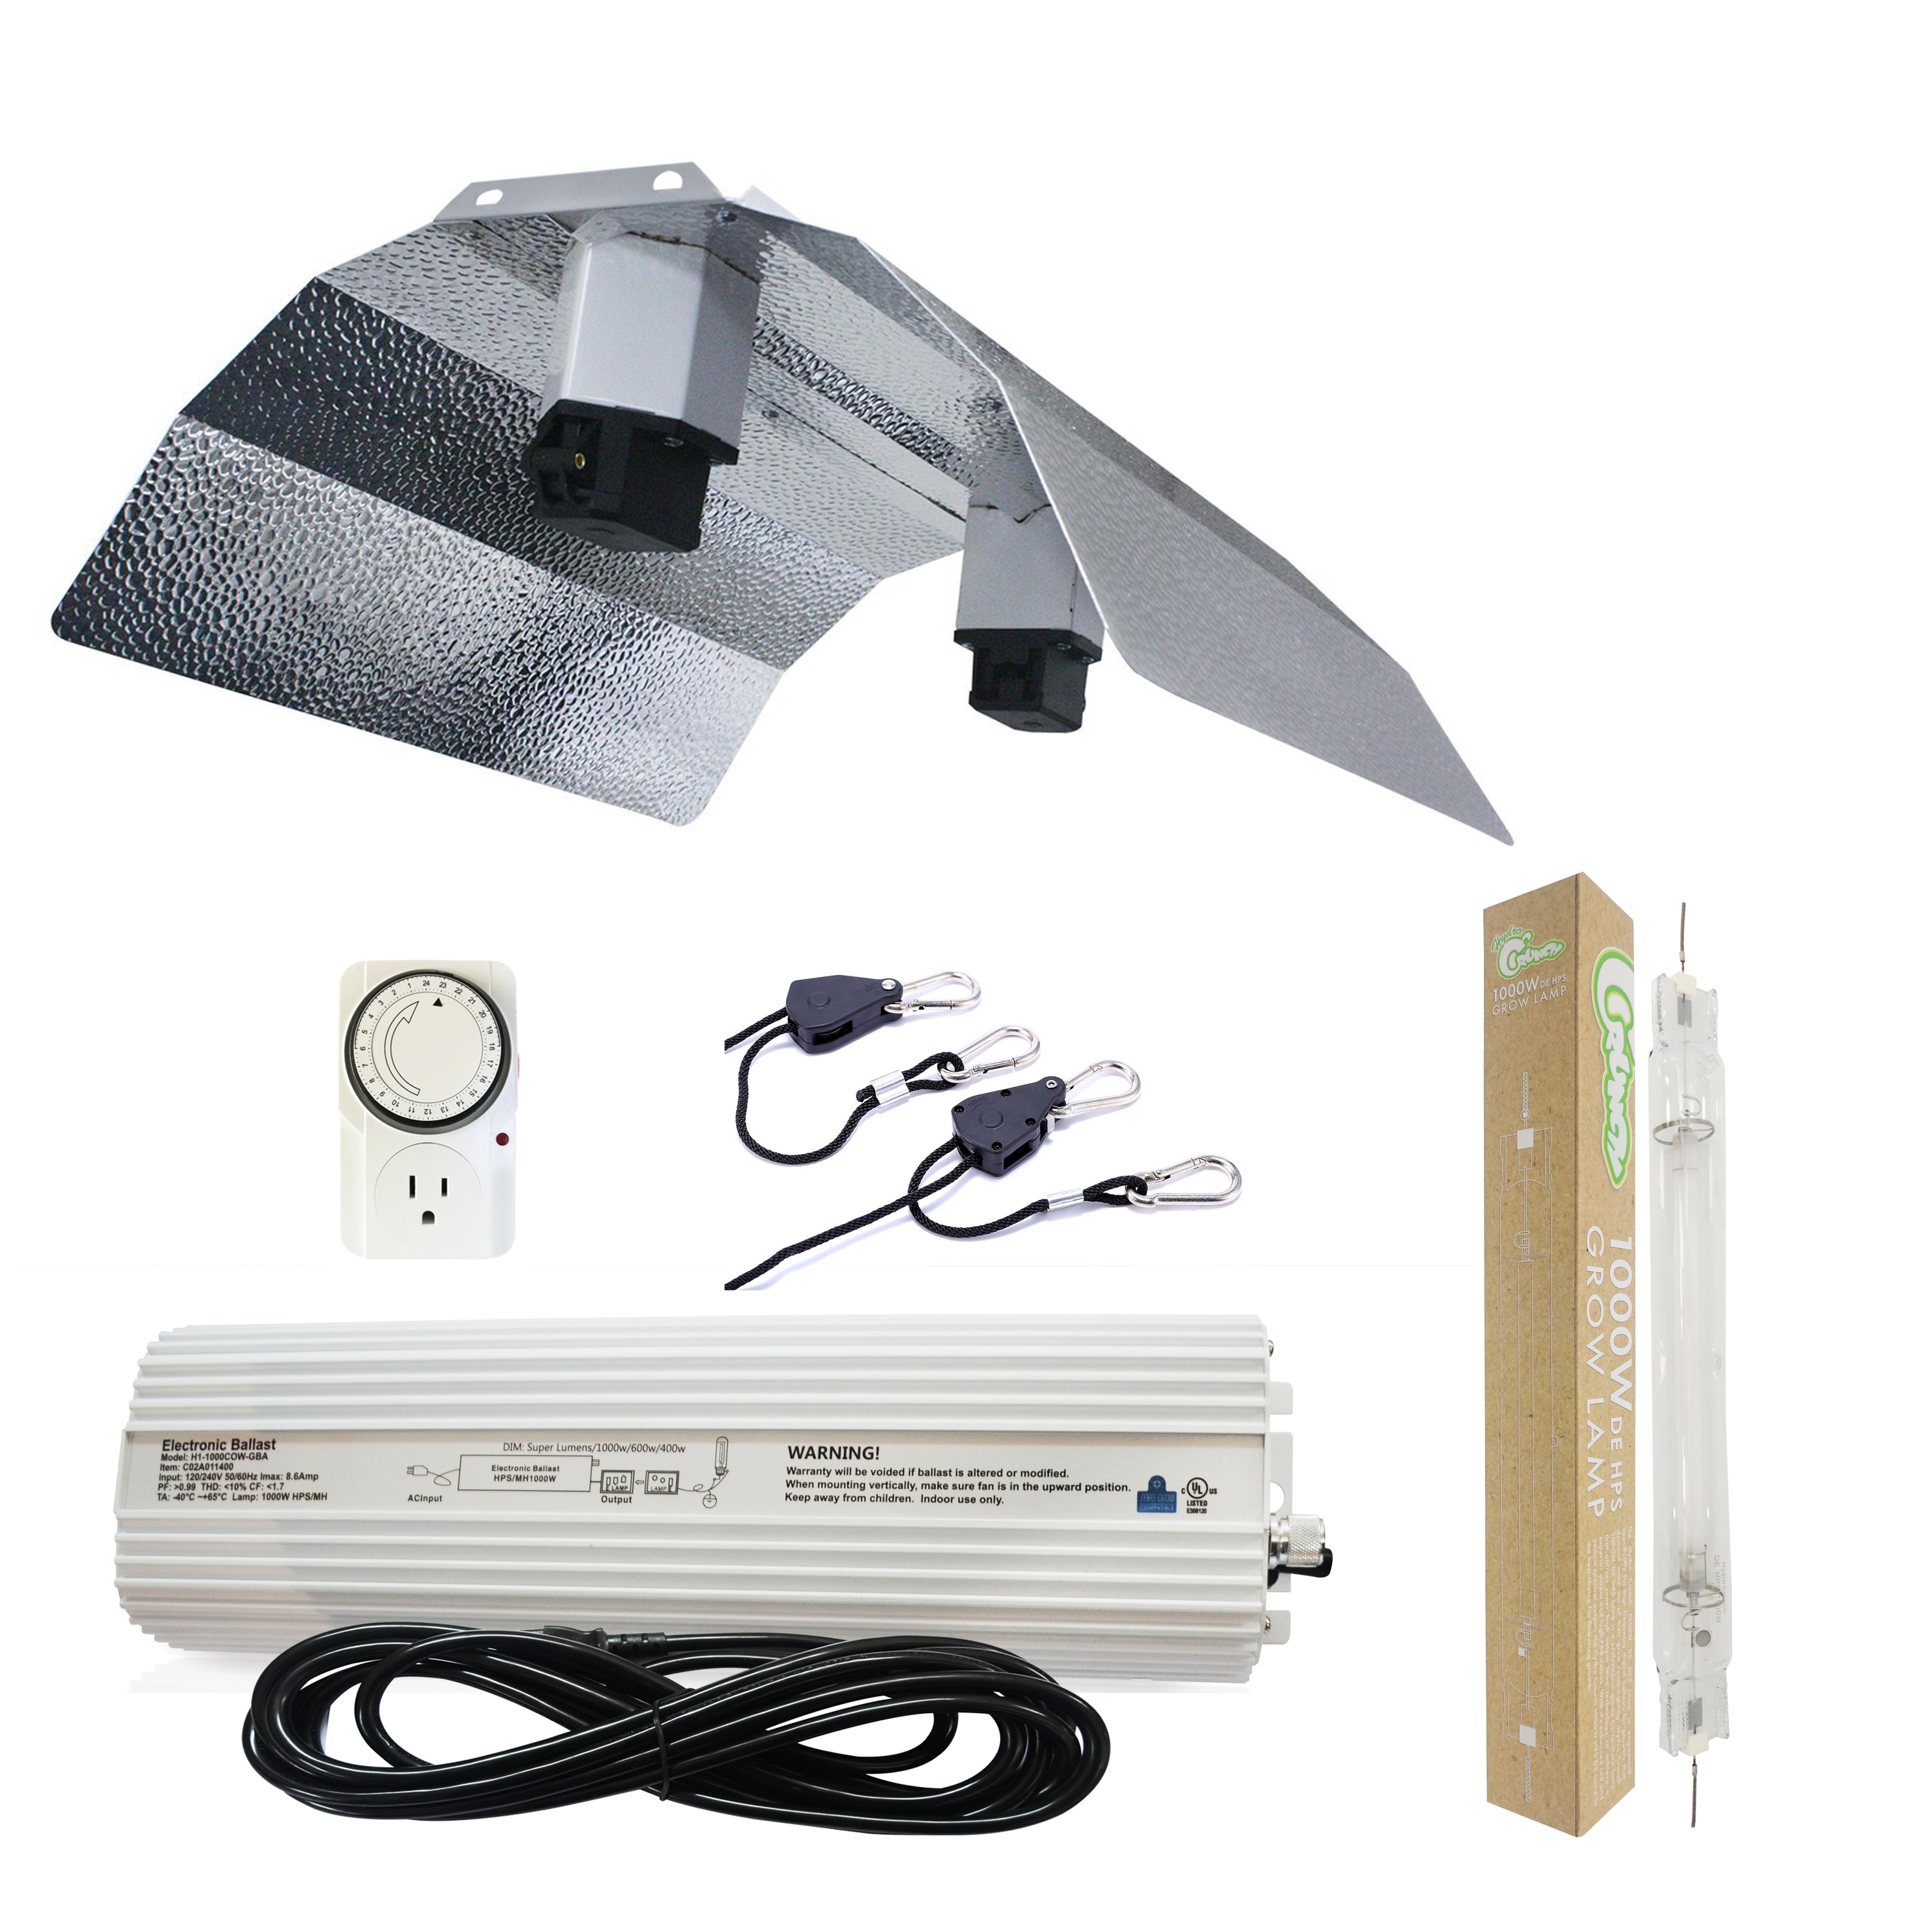 Hydro Crunch 1000-Watt Double Ended HPS 120/240V Grow Light System with DE Basic Wing Grow Light Reflector